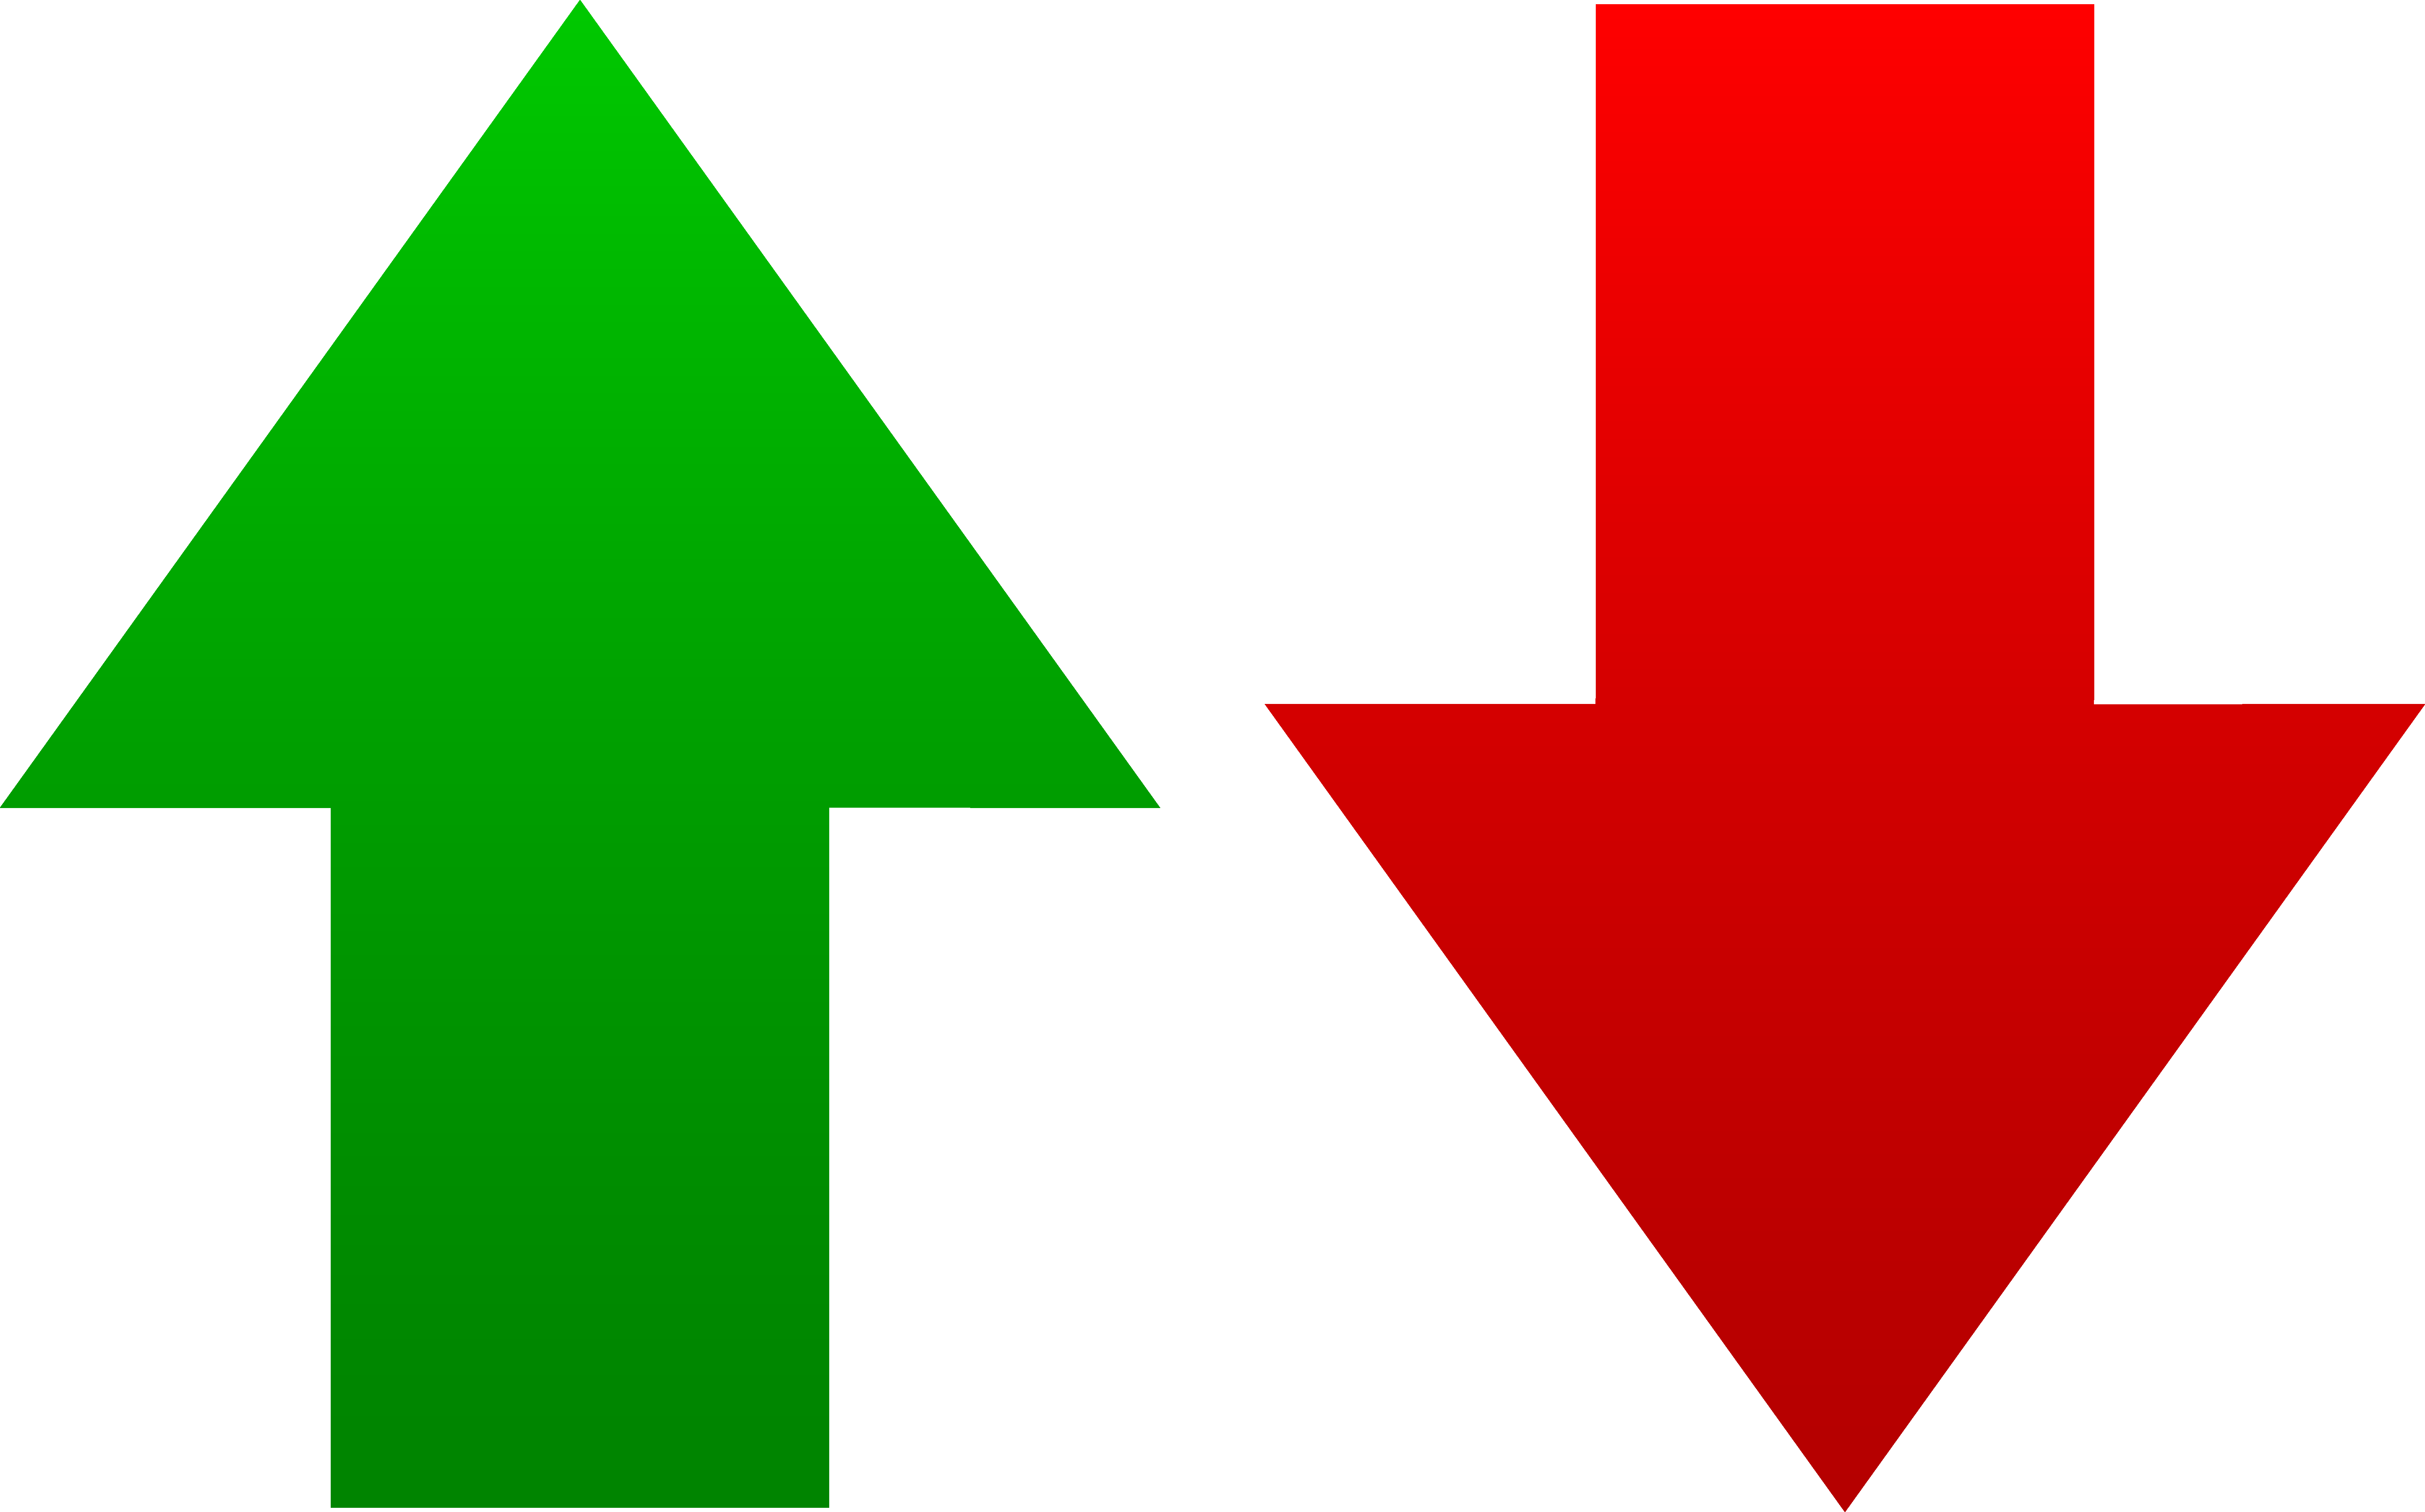 6966x4343 Green And Red Arrow Symbols